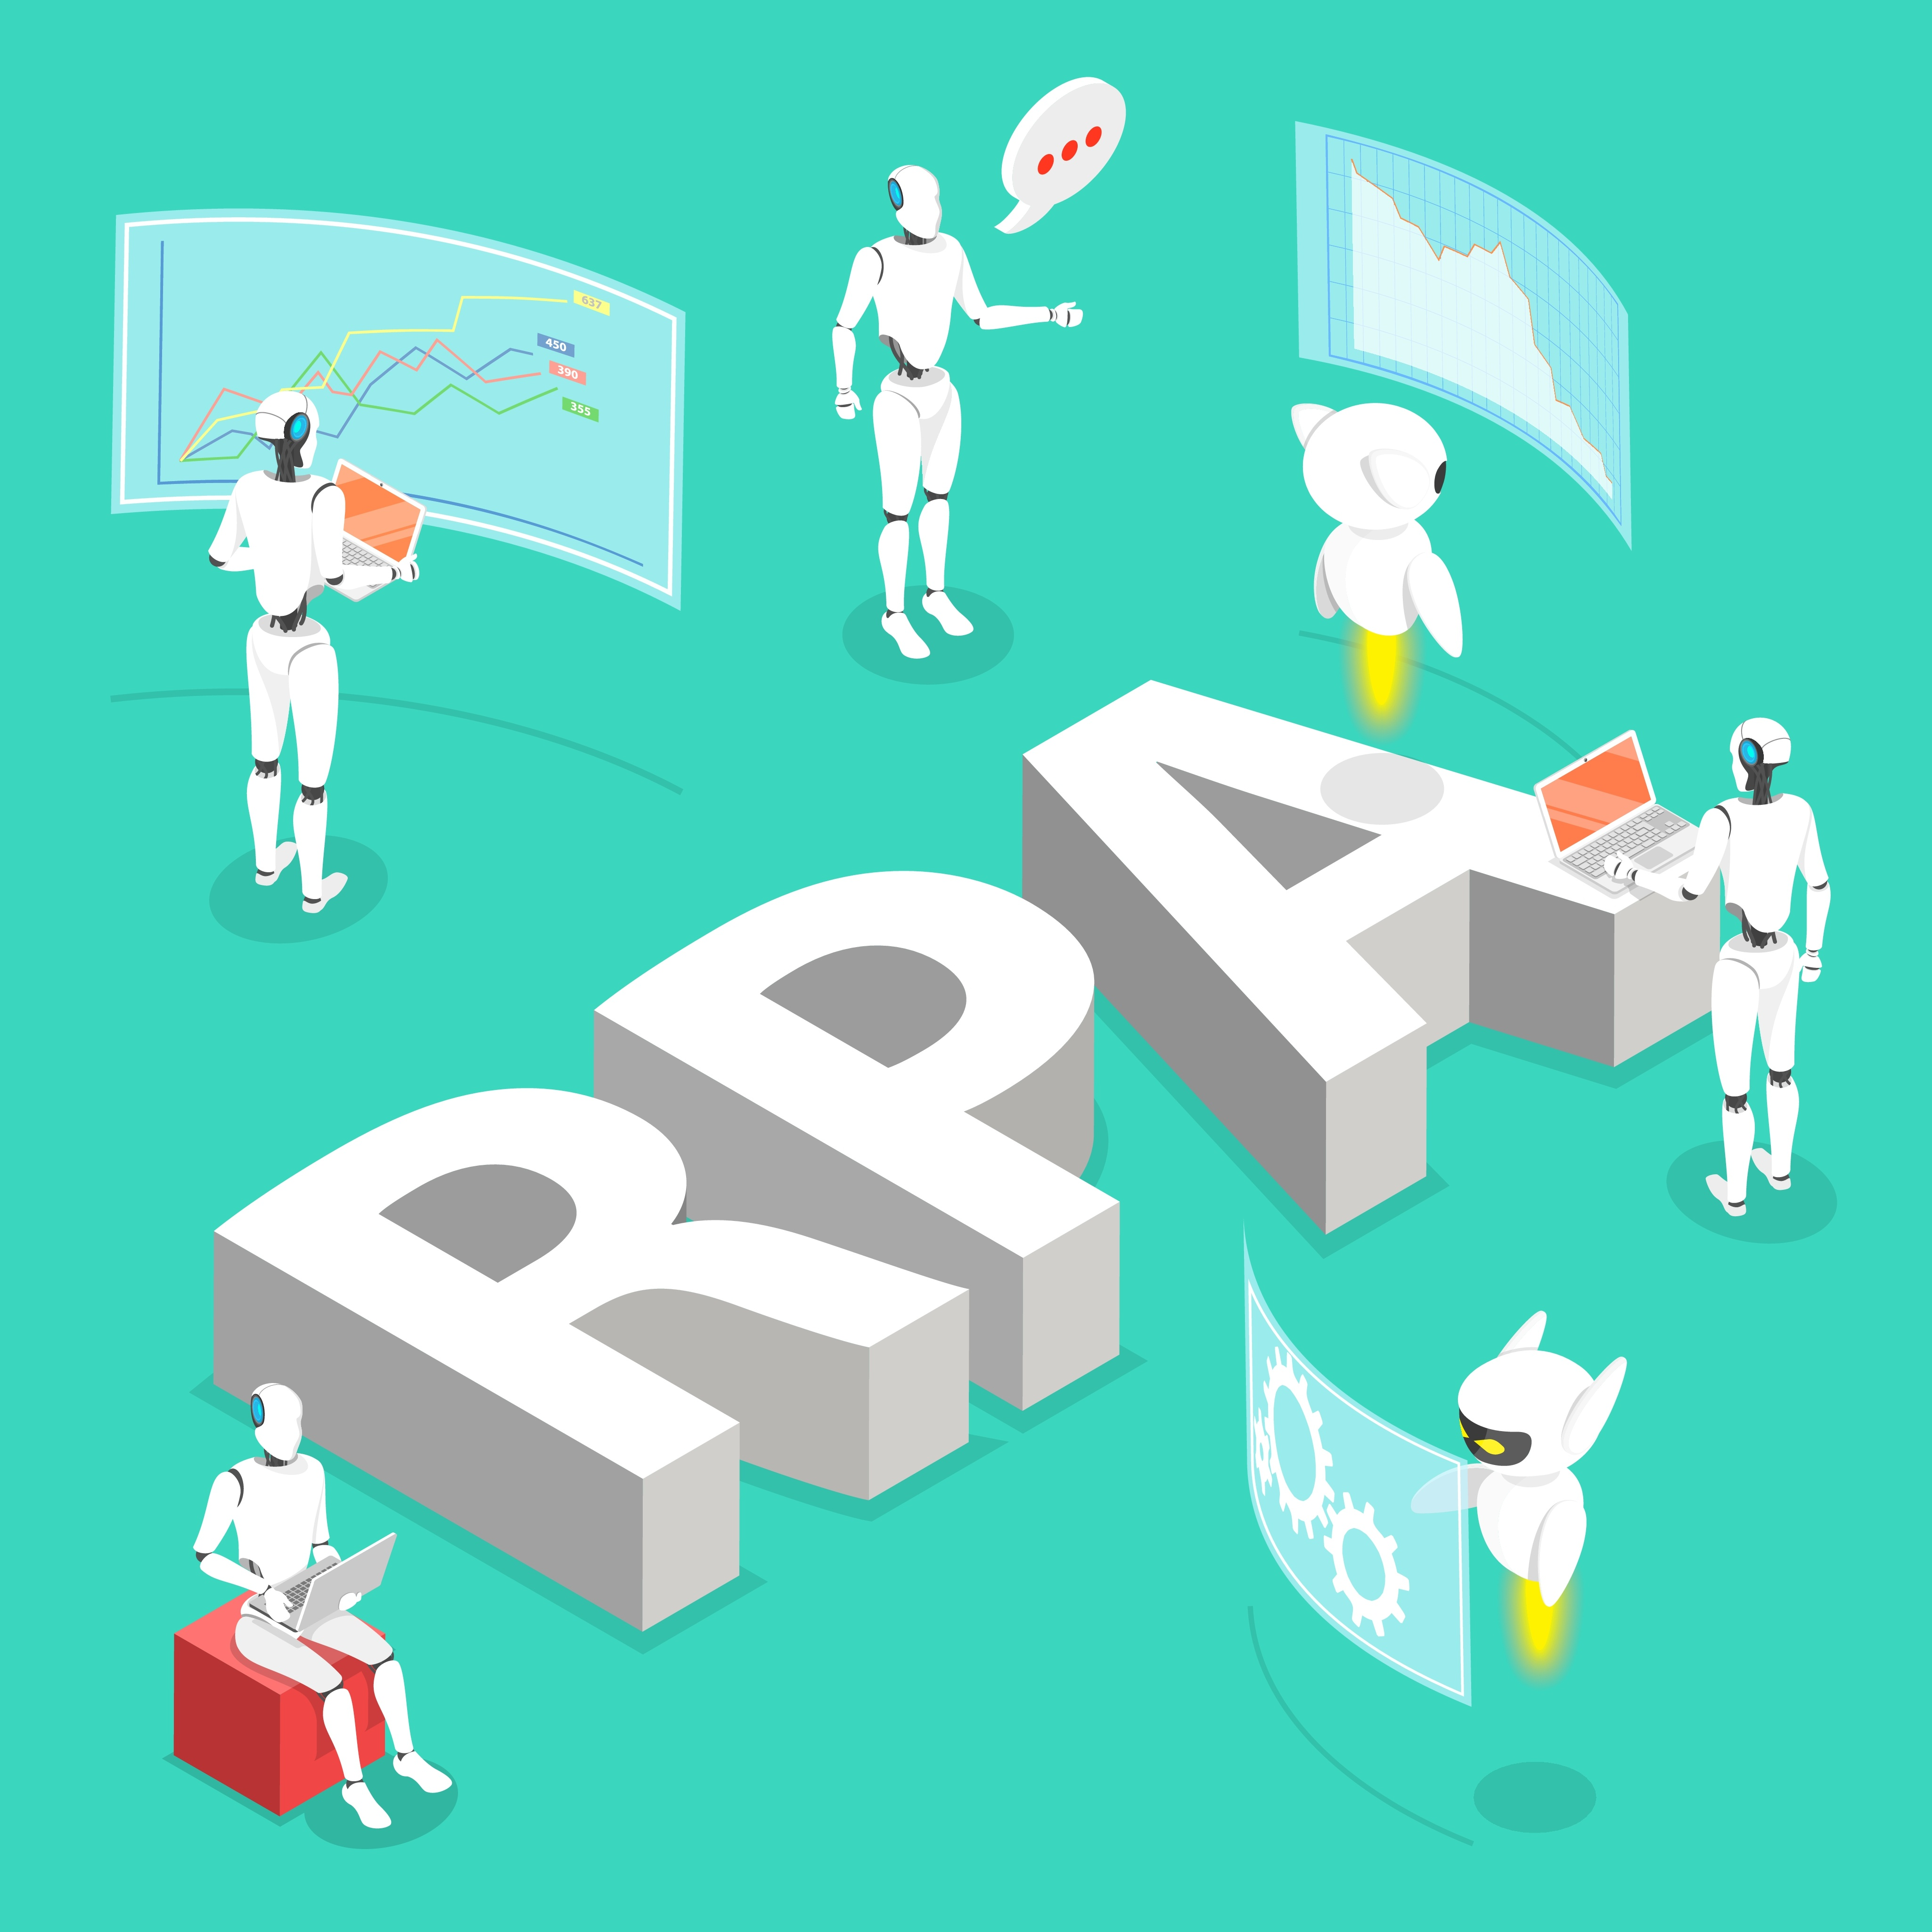 How RPA and AI will impact IT asset management